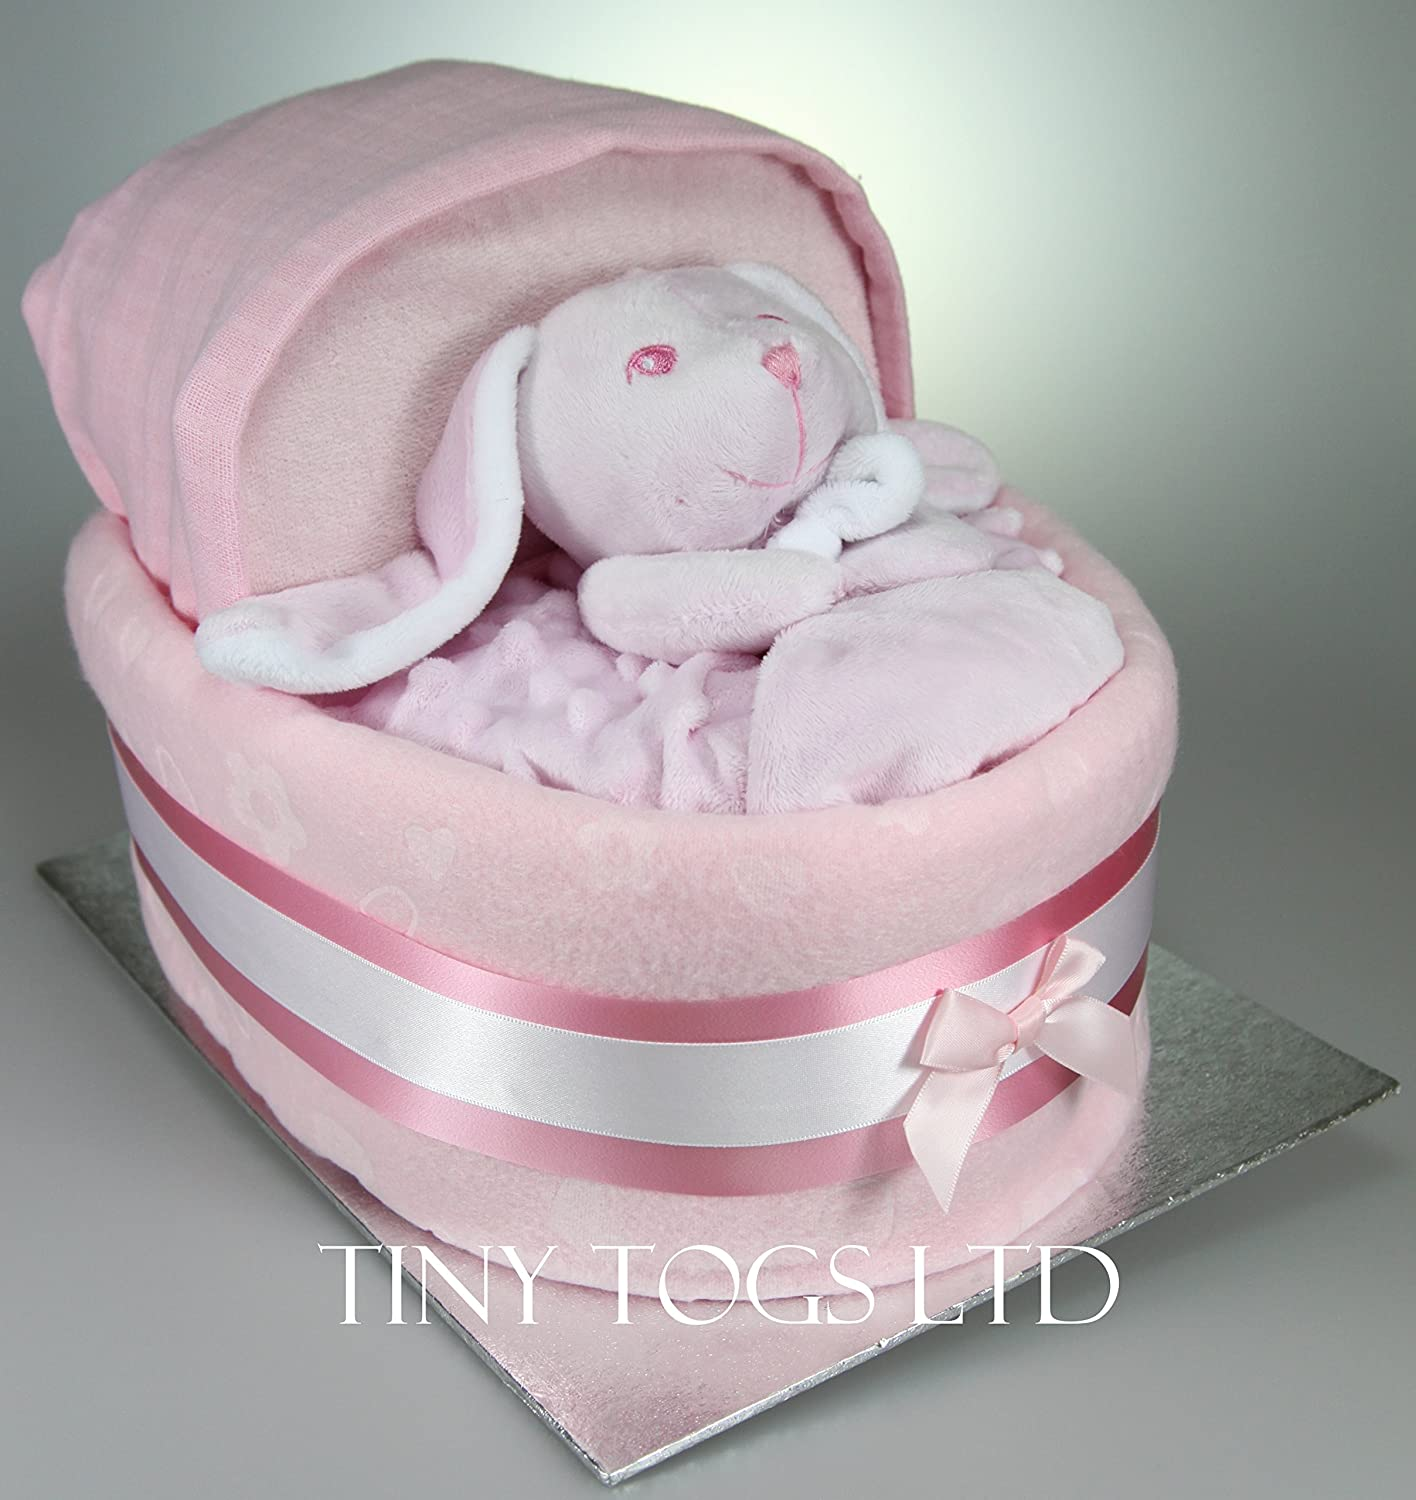 Baby Boy Girl Unisex Nappy Cake Crib Basinet New Baby Shower Gift Present (Blue) Tiny Togs Ltd